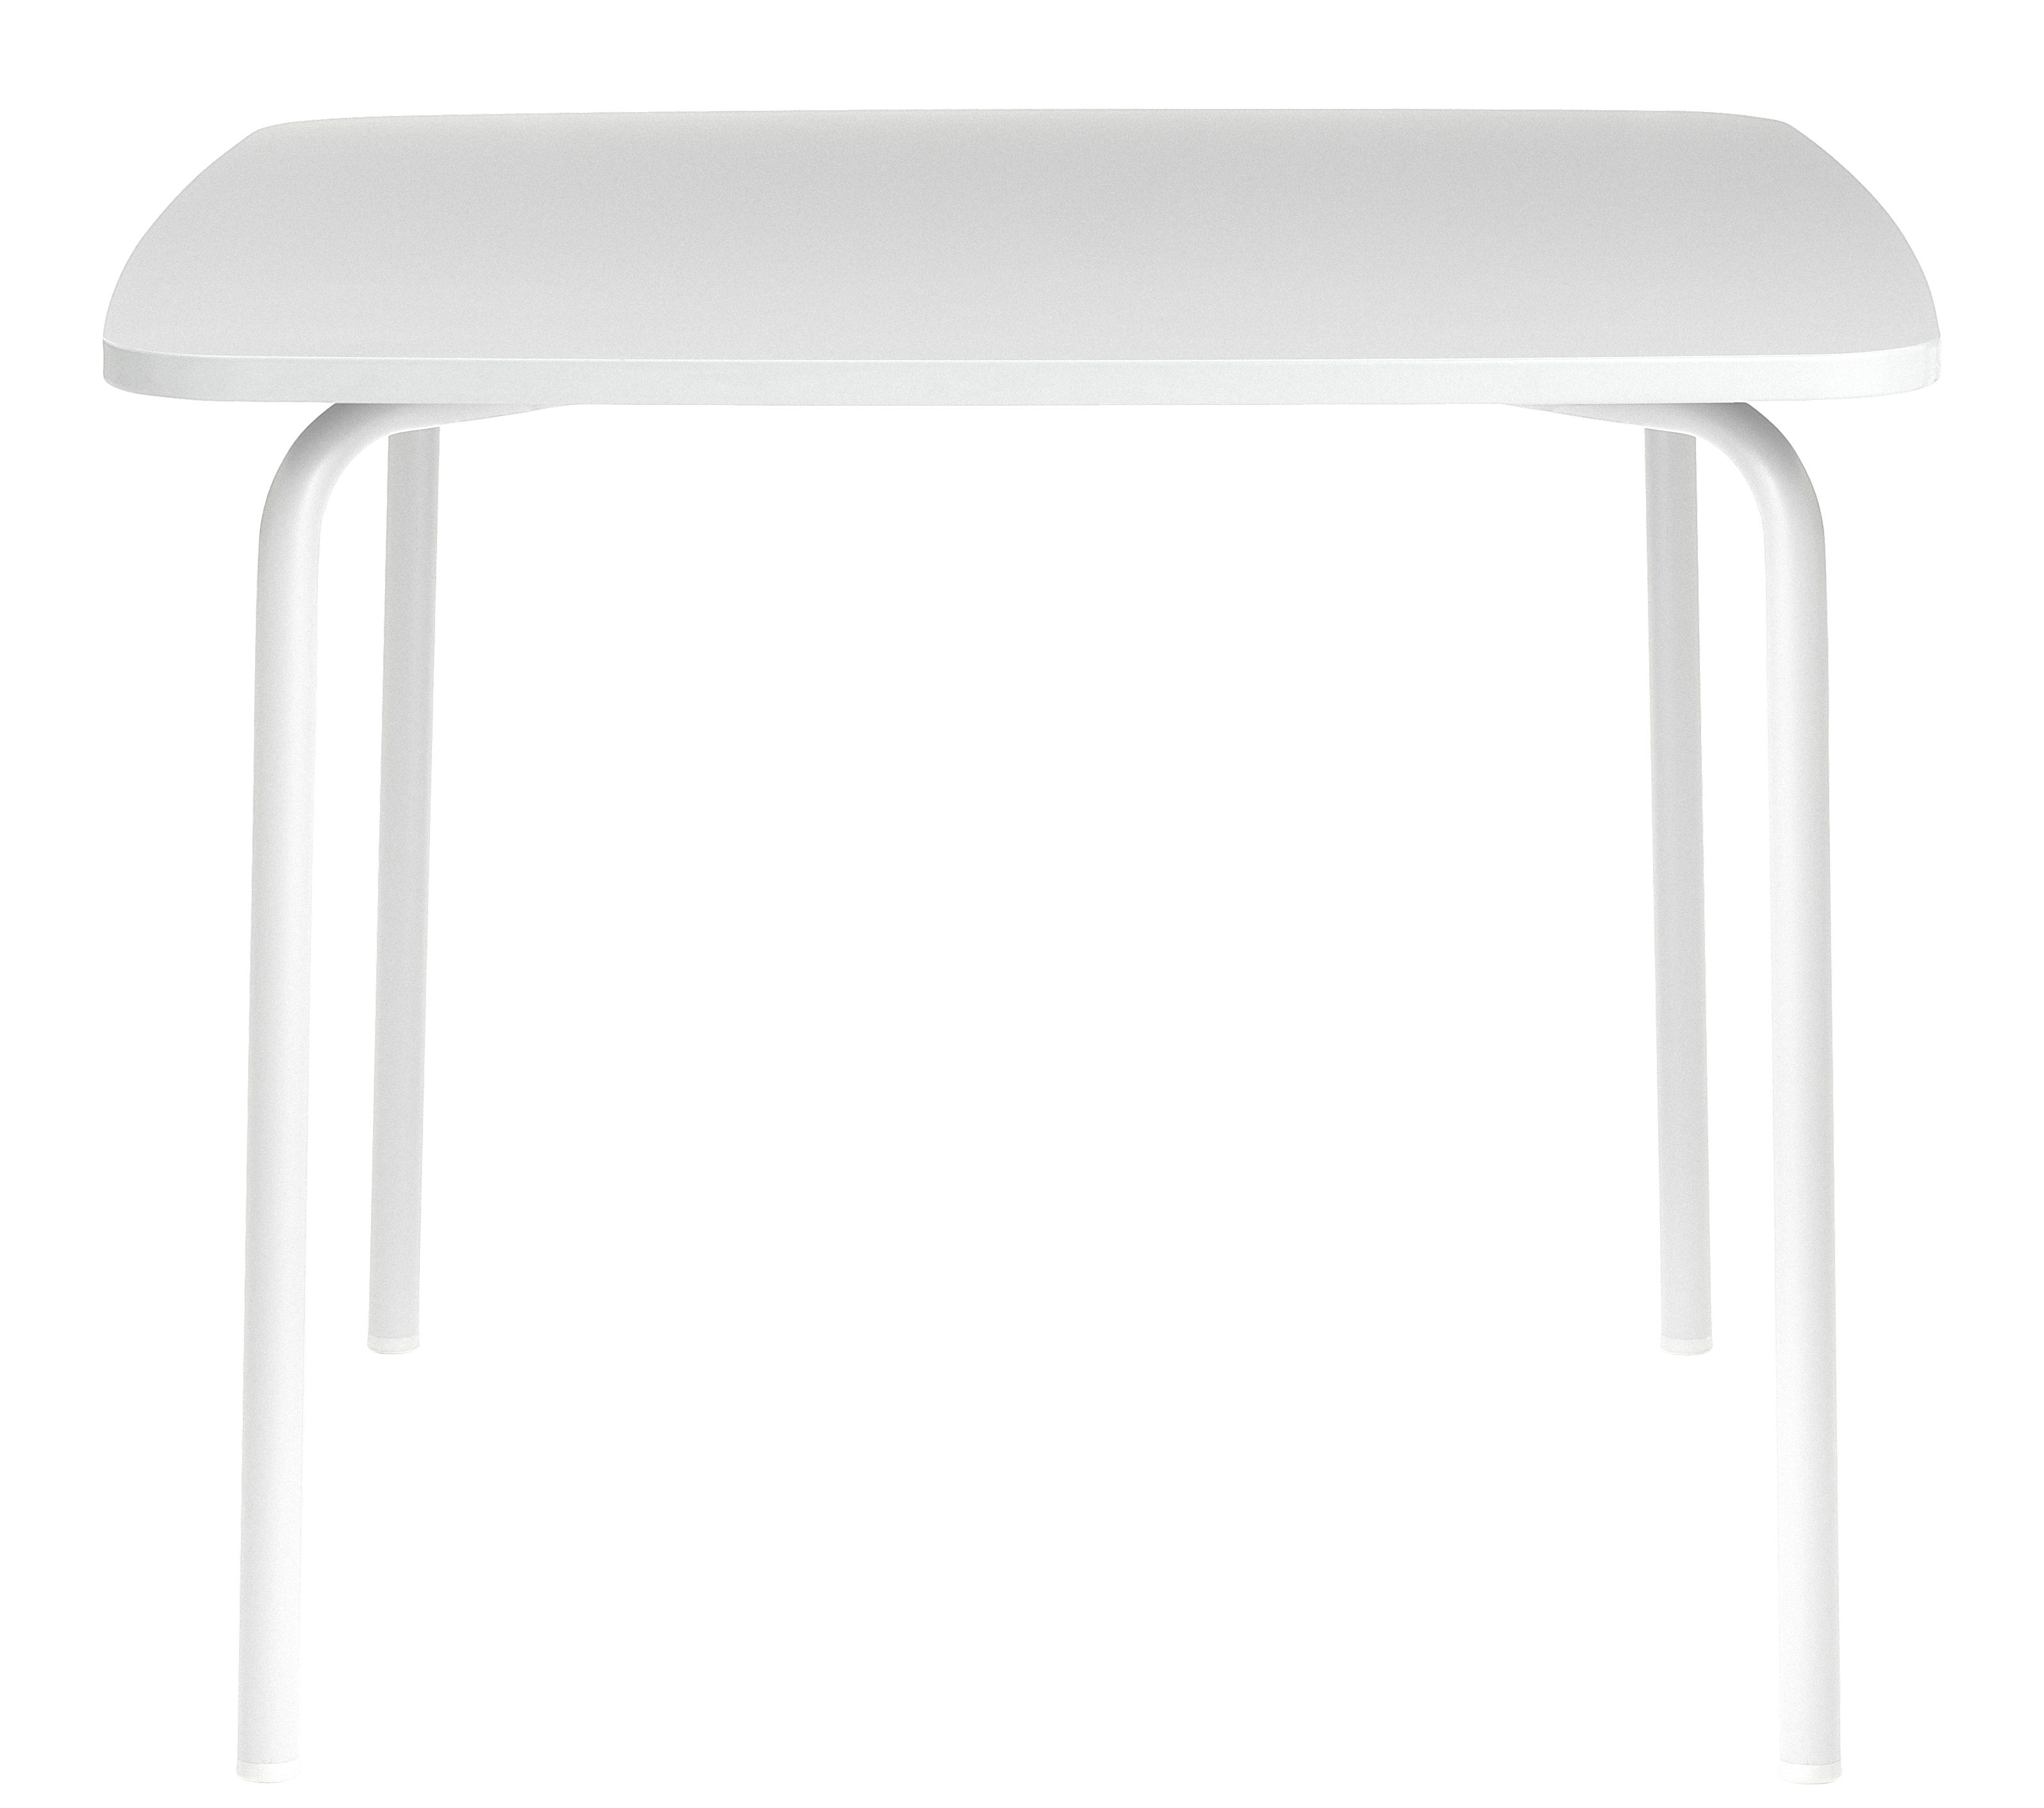 Mobilier - Tables - Table My Table Small / 90 x 90 cm - Normann Copenhagen - Blanc - Acier laqué, Laminé